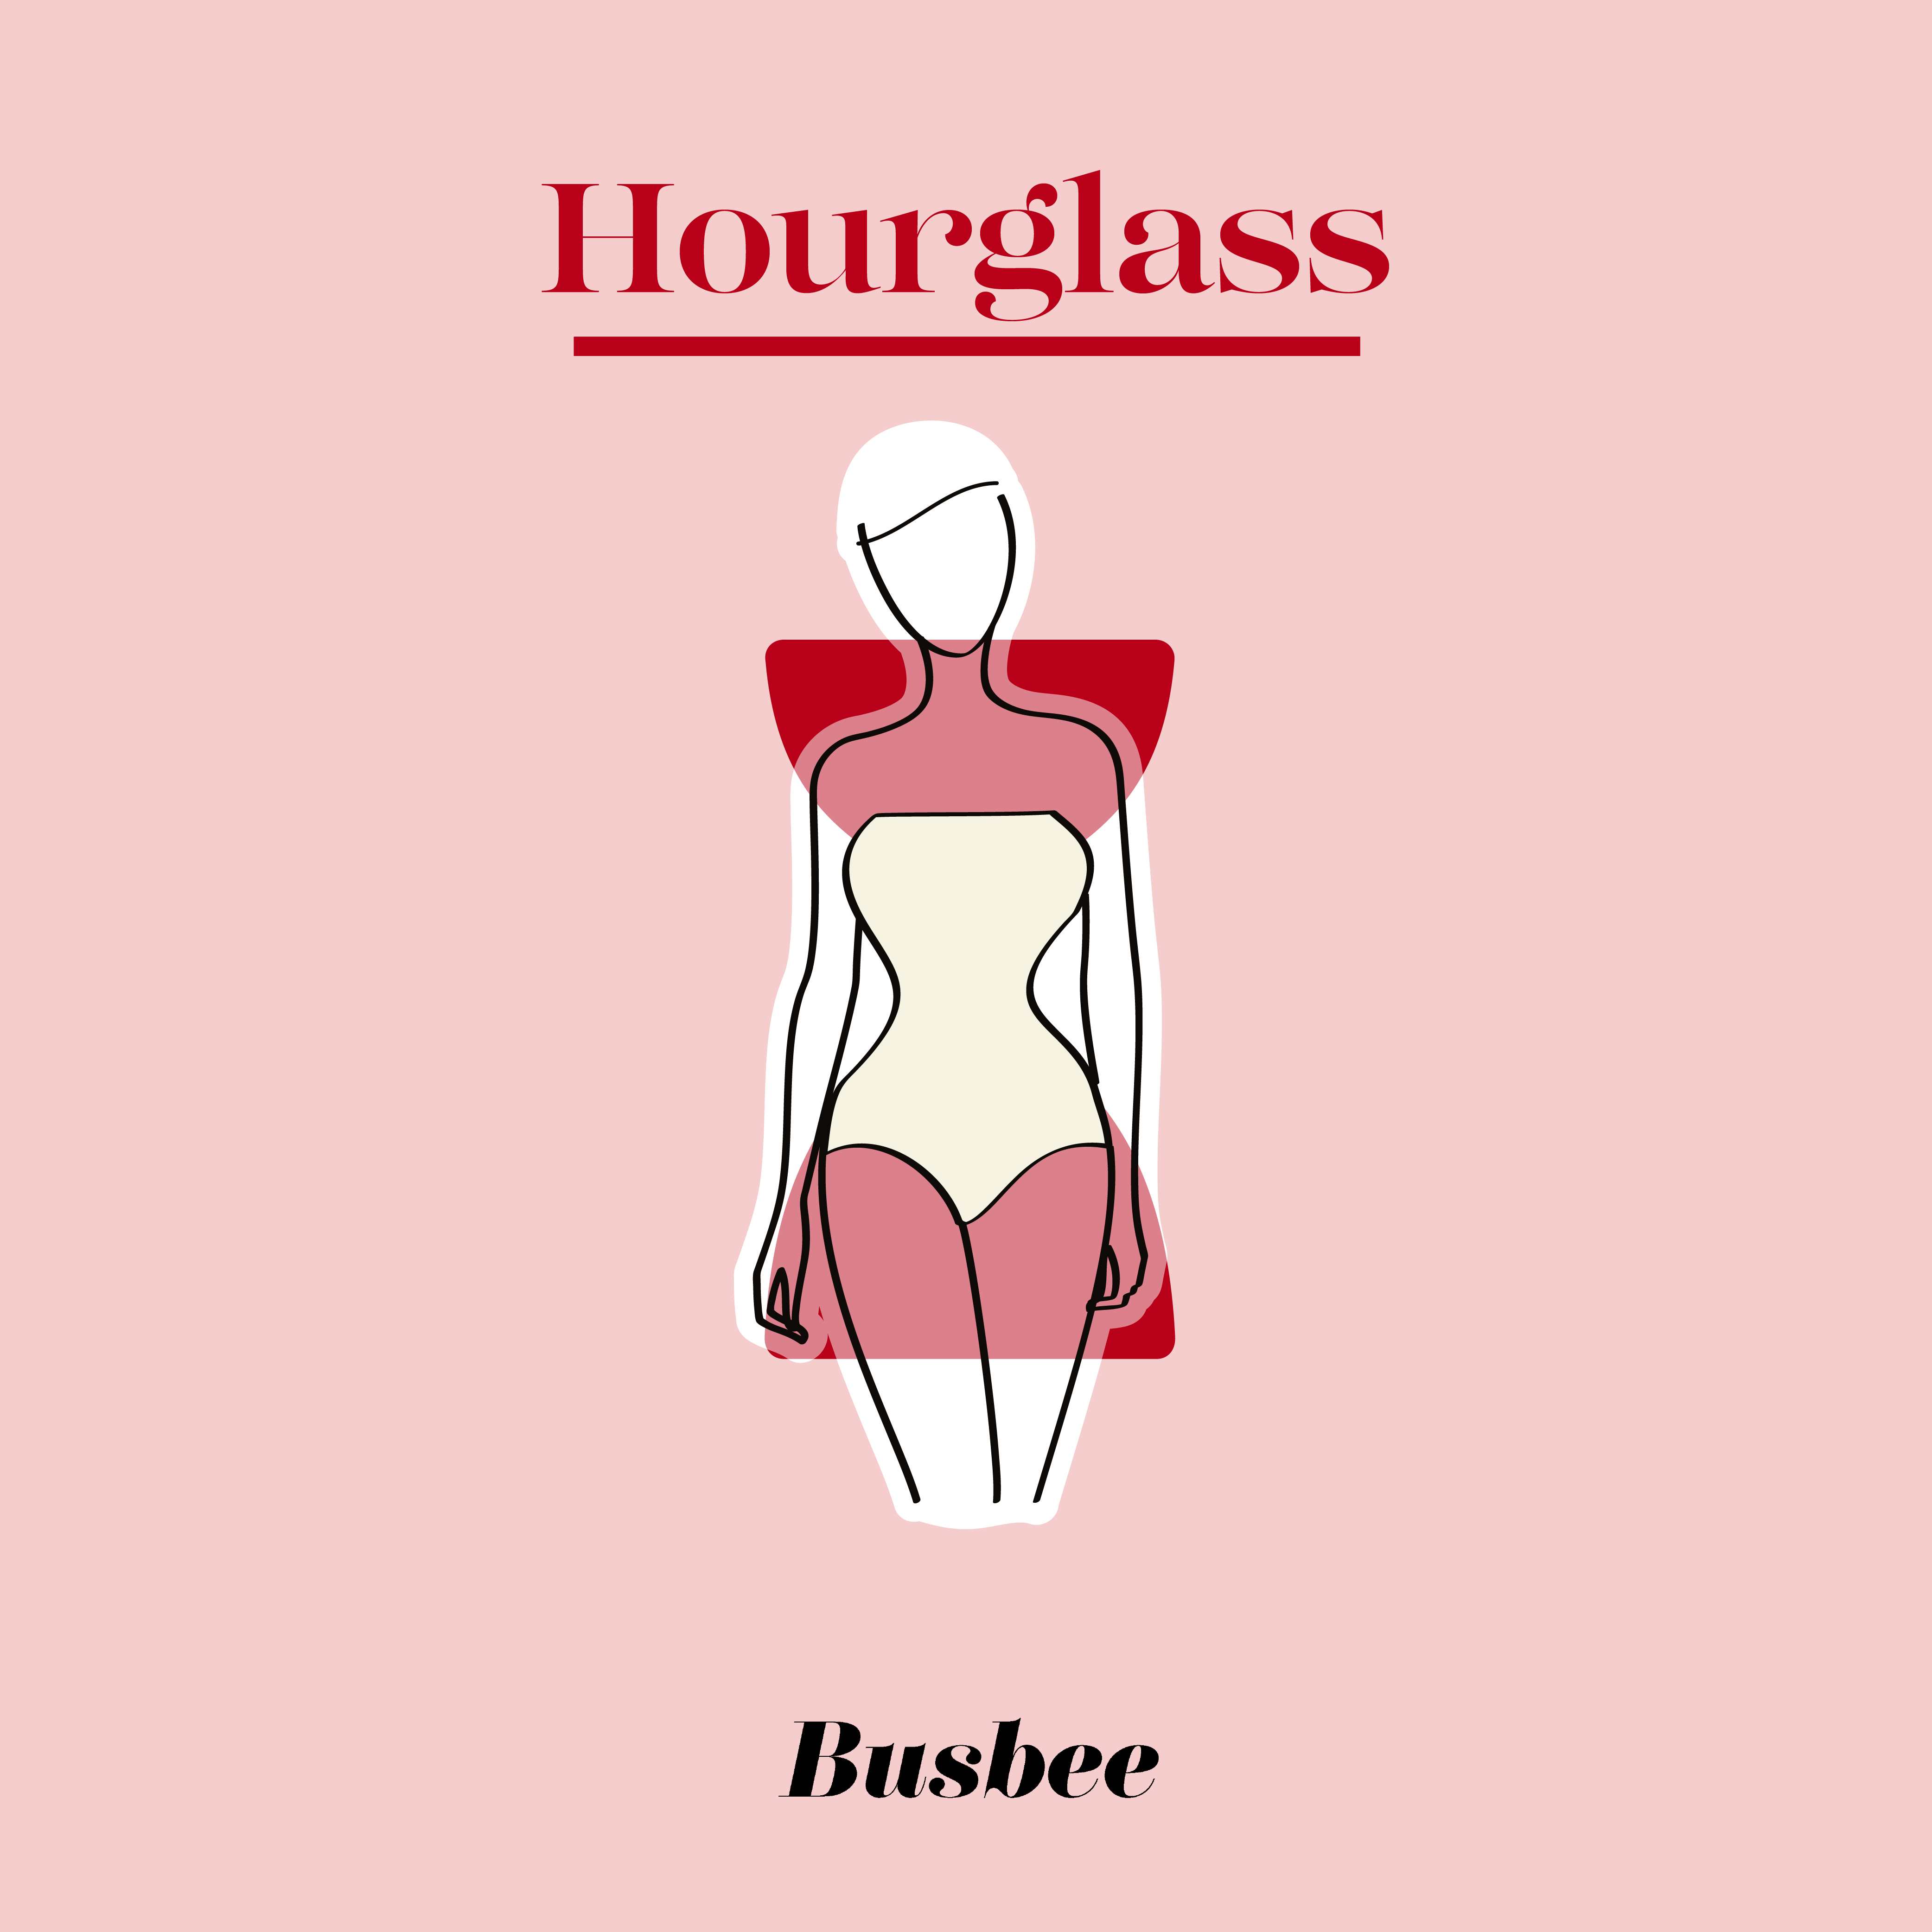 how to dress an hourglass body shape, Erin Busbee of Busbee sharing styling tips for a hourglass body shape